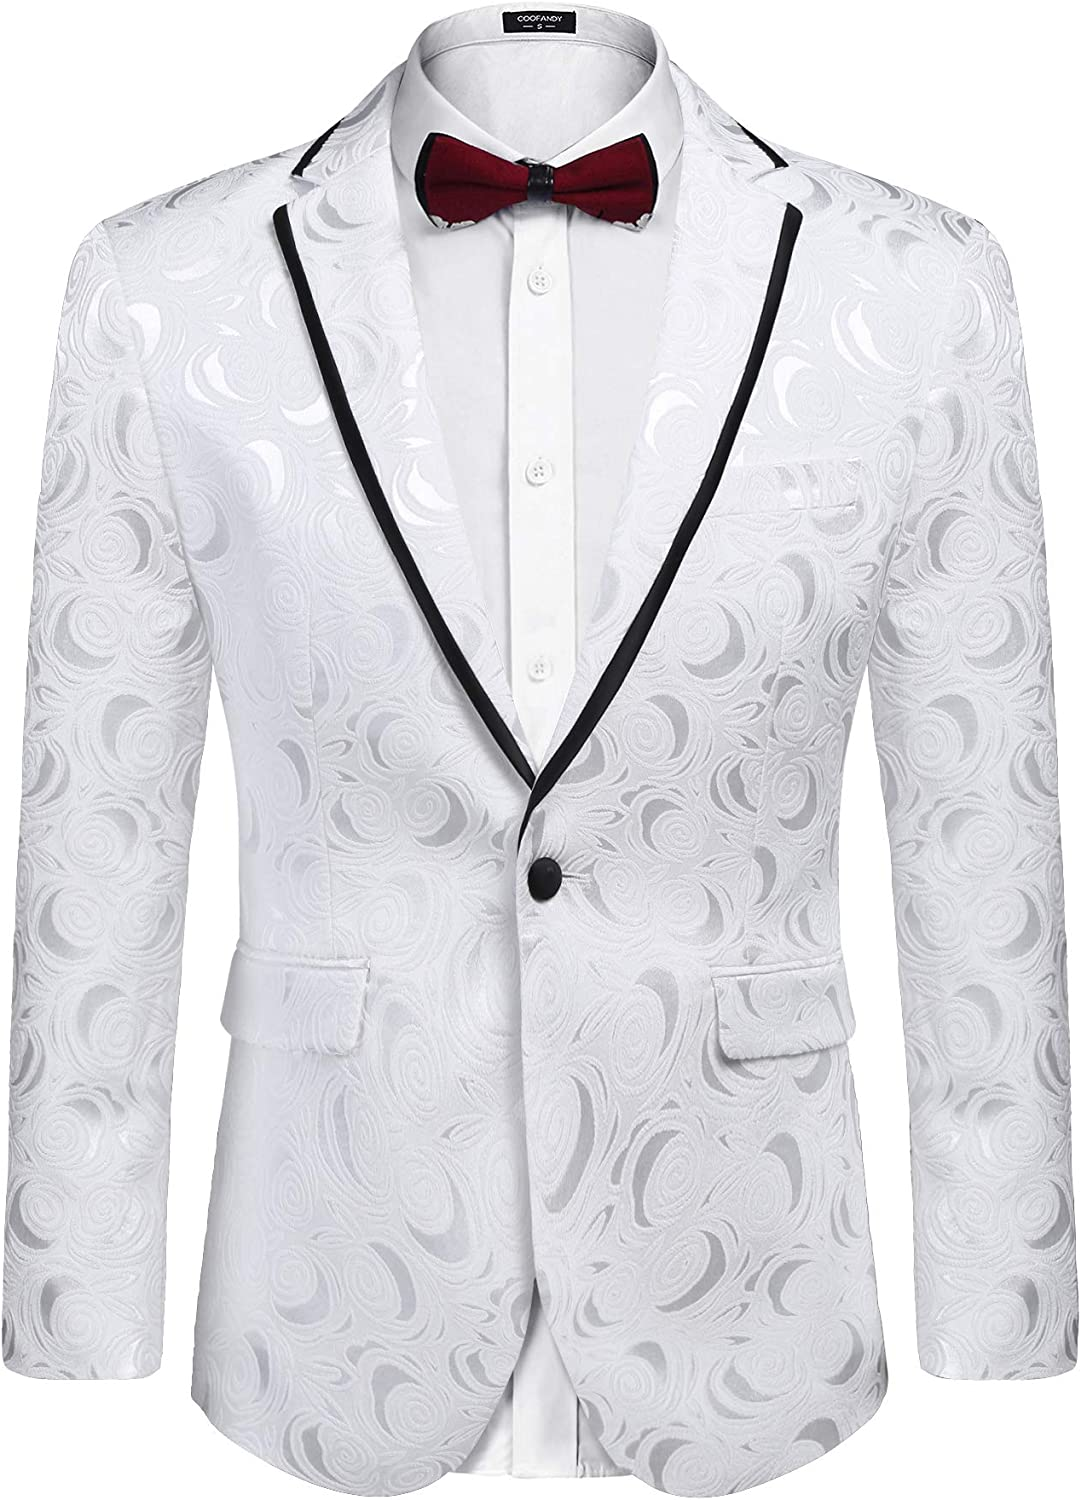 COOFANDY Men's Floral Suit Austin Mall NEW before selling ☆ Jacket Wedding Par Blazer Embroidered